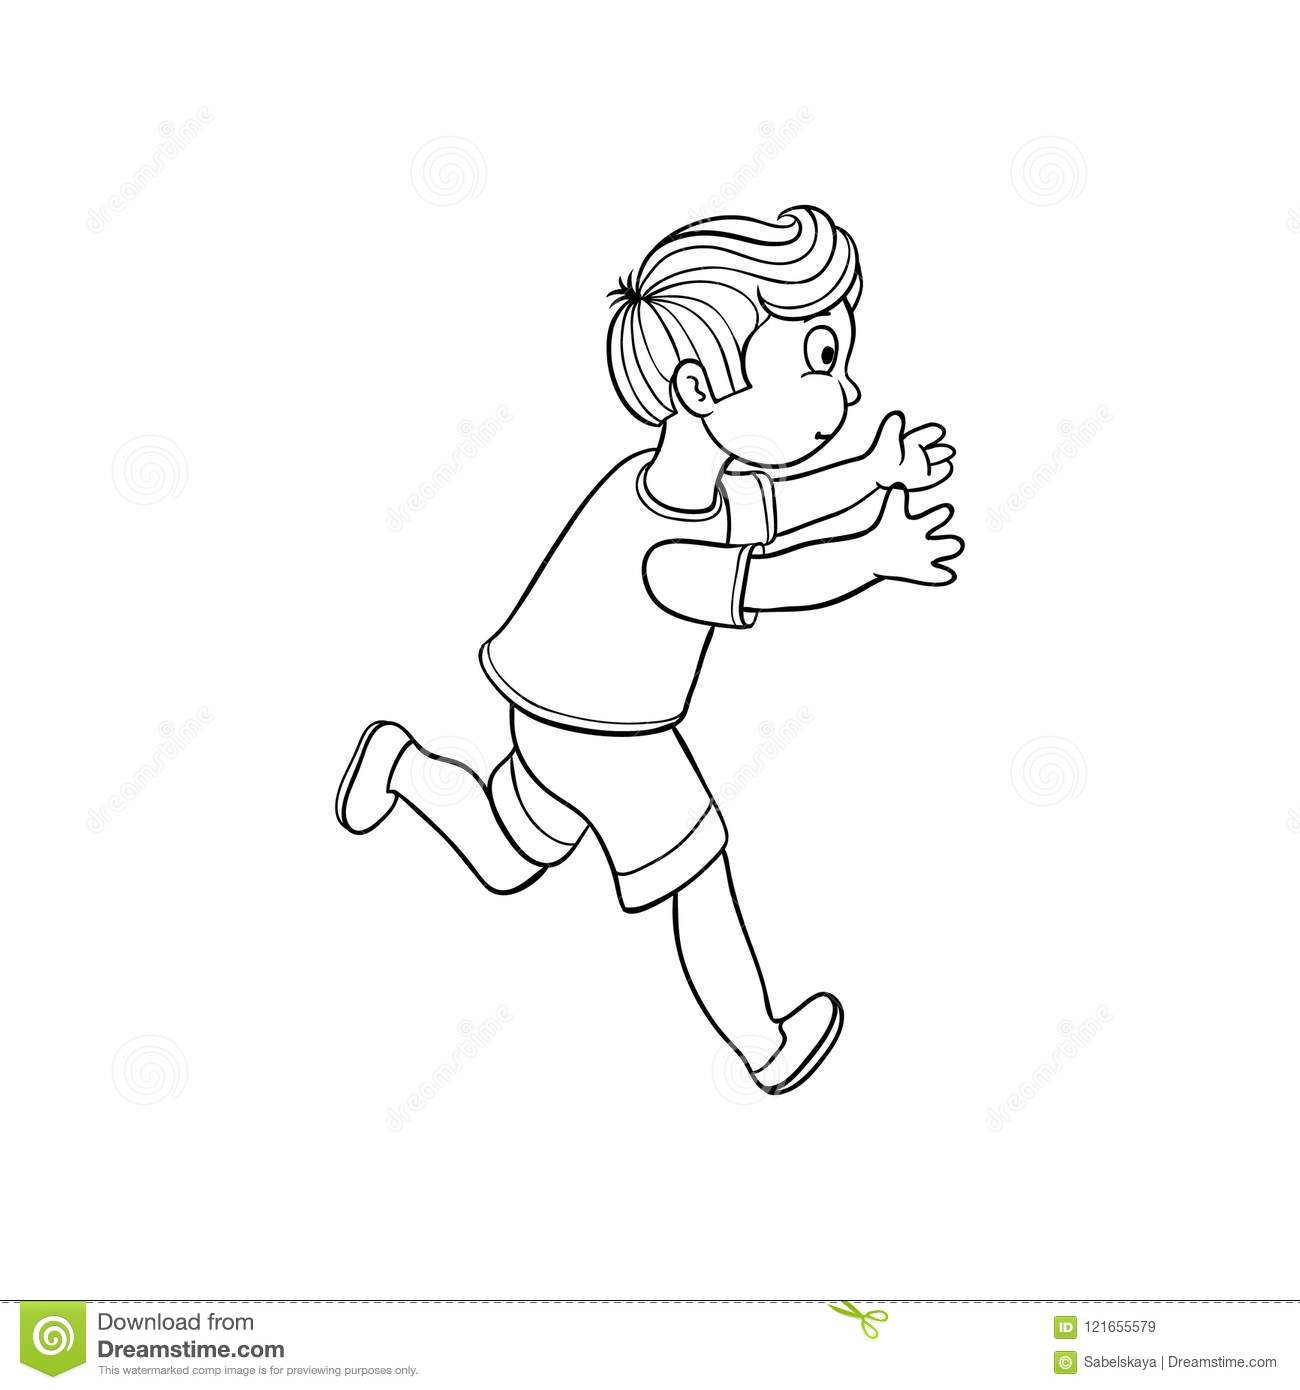 Boy in summer clothing denim shorts tshirt running looking back ranaway kid icon sketch teen male character child running with afraid face side view